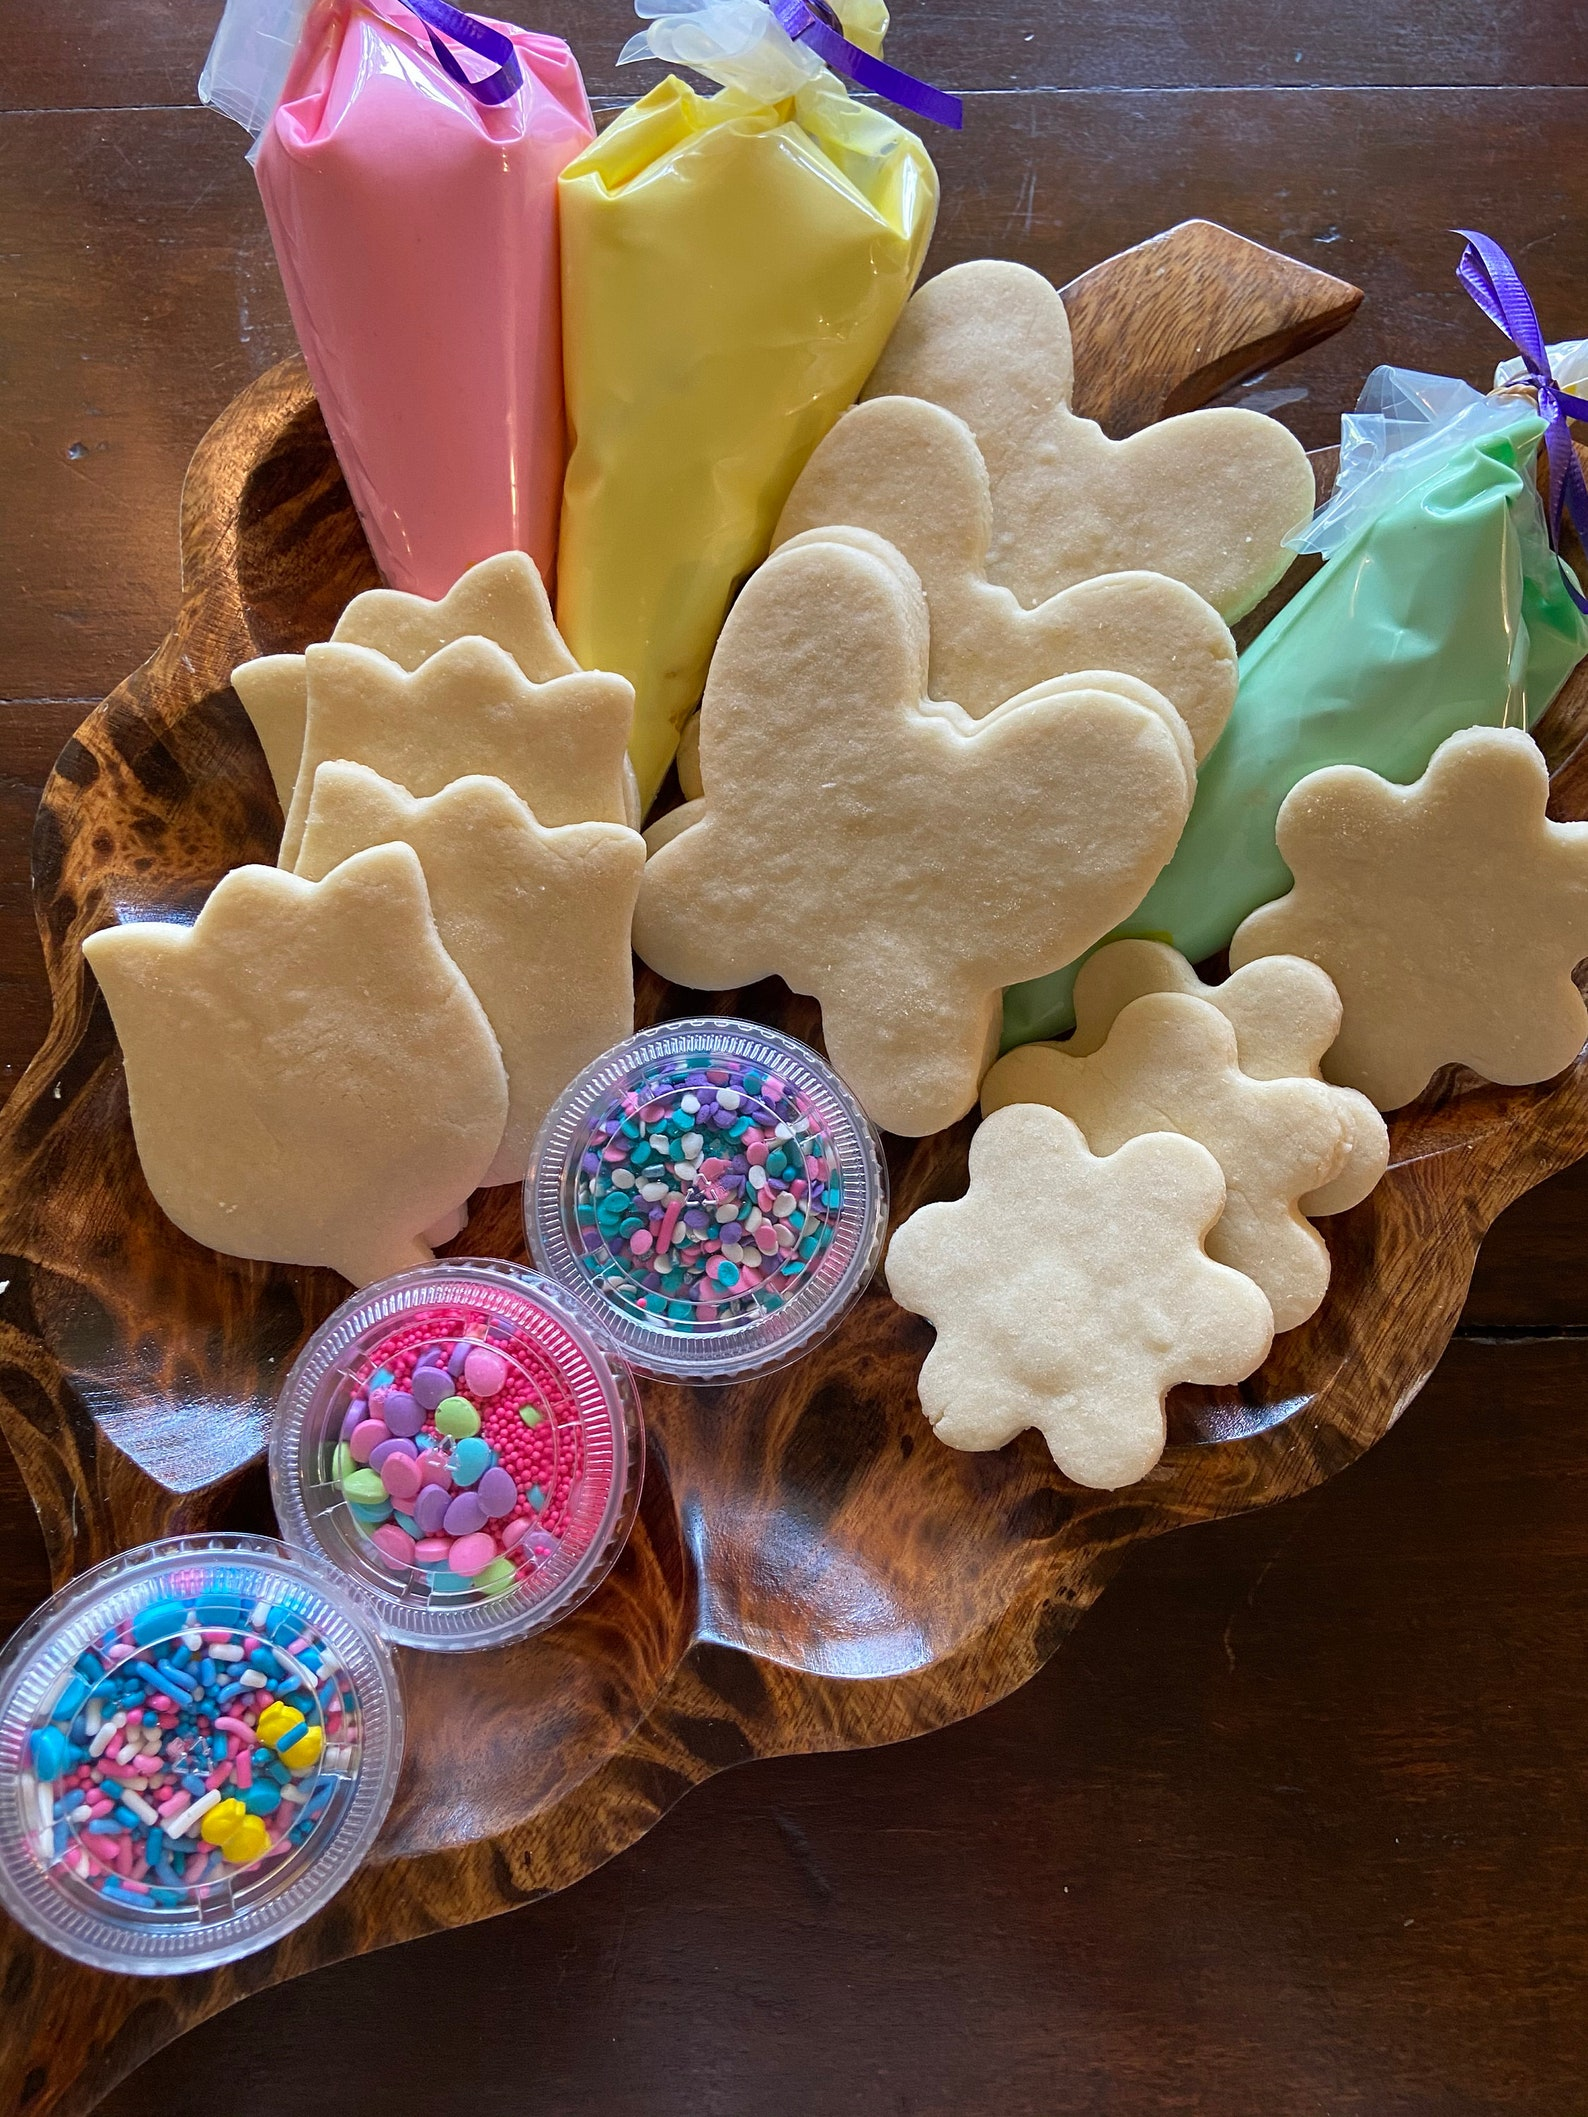 Decorate Your Own Spring Cookies